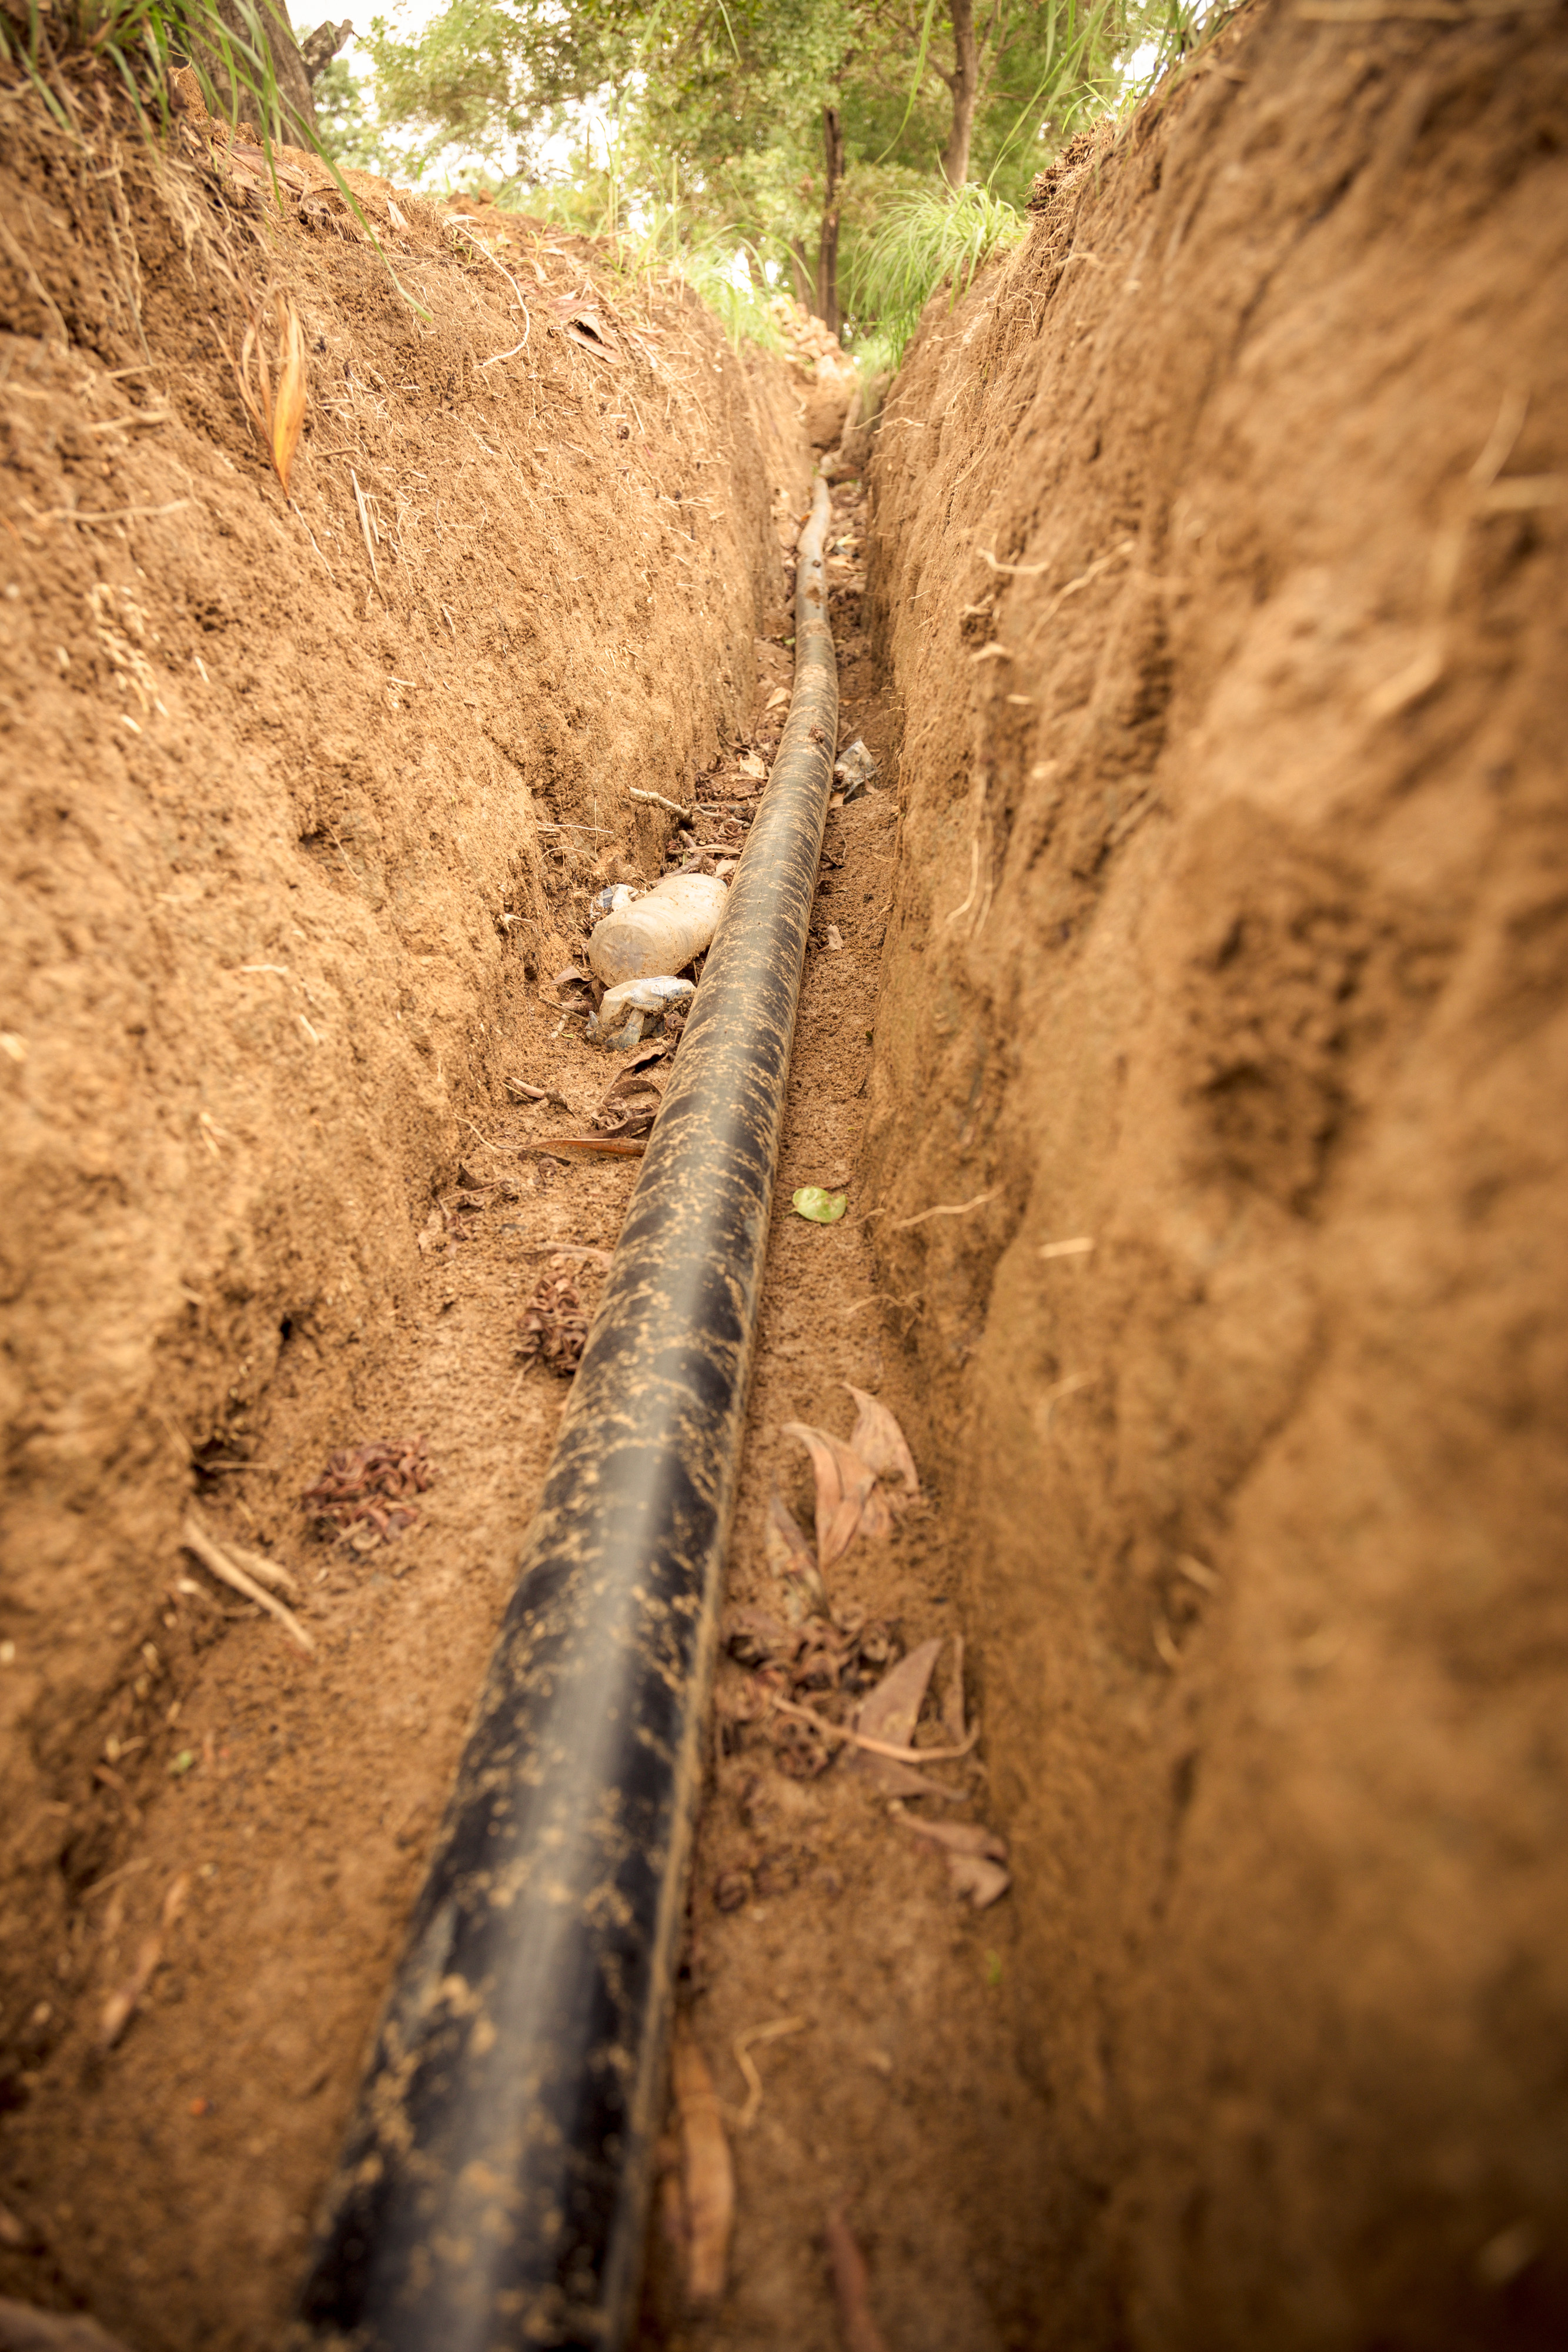 A section of a 3km water pipe extension being installed by Concern in rural Sierra Leone